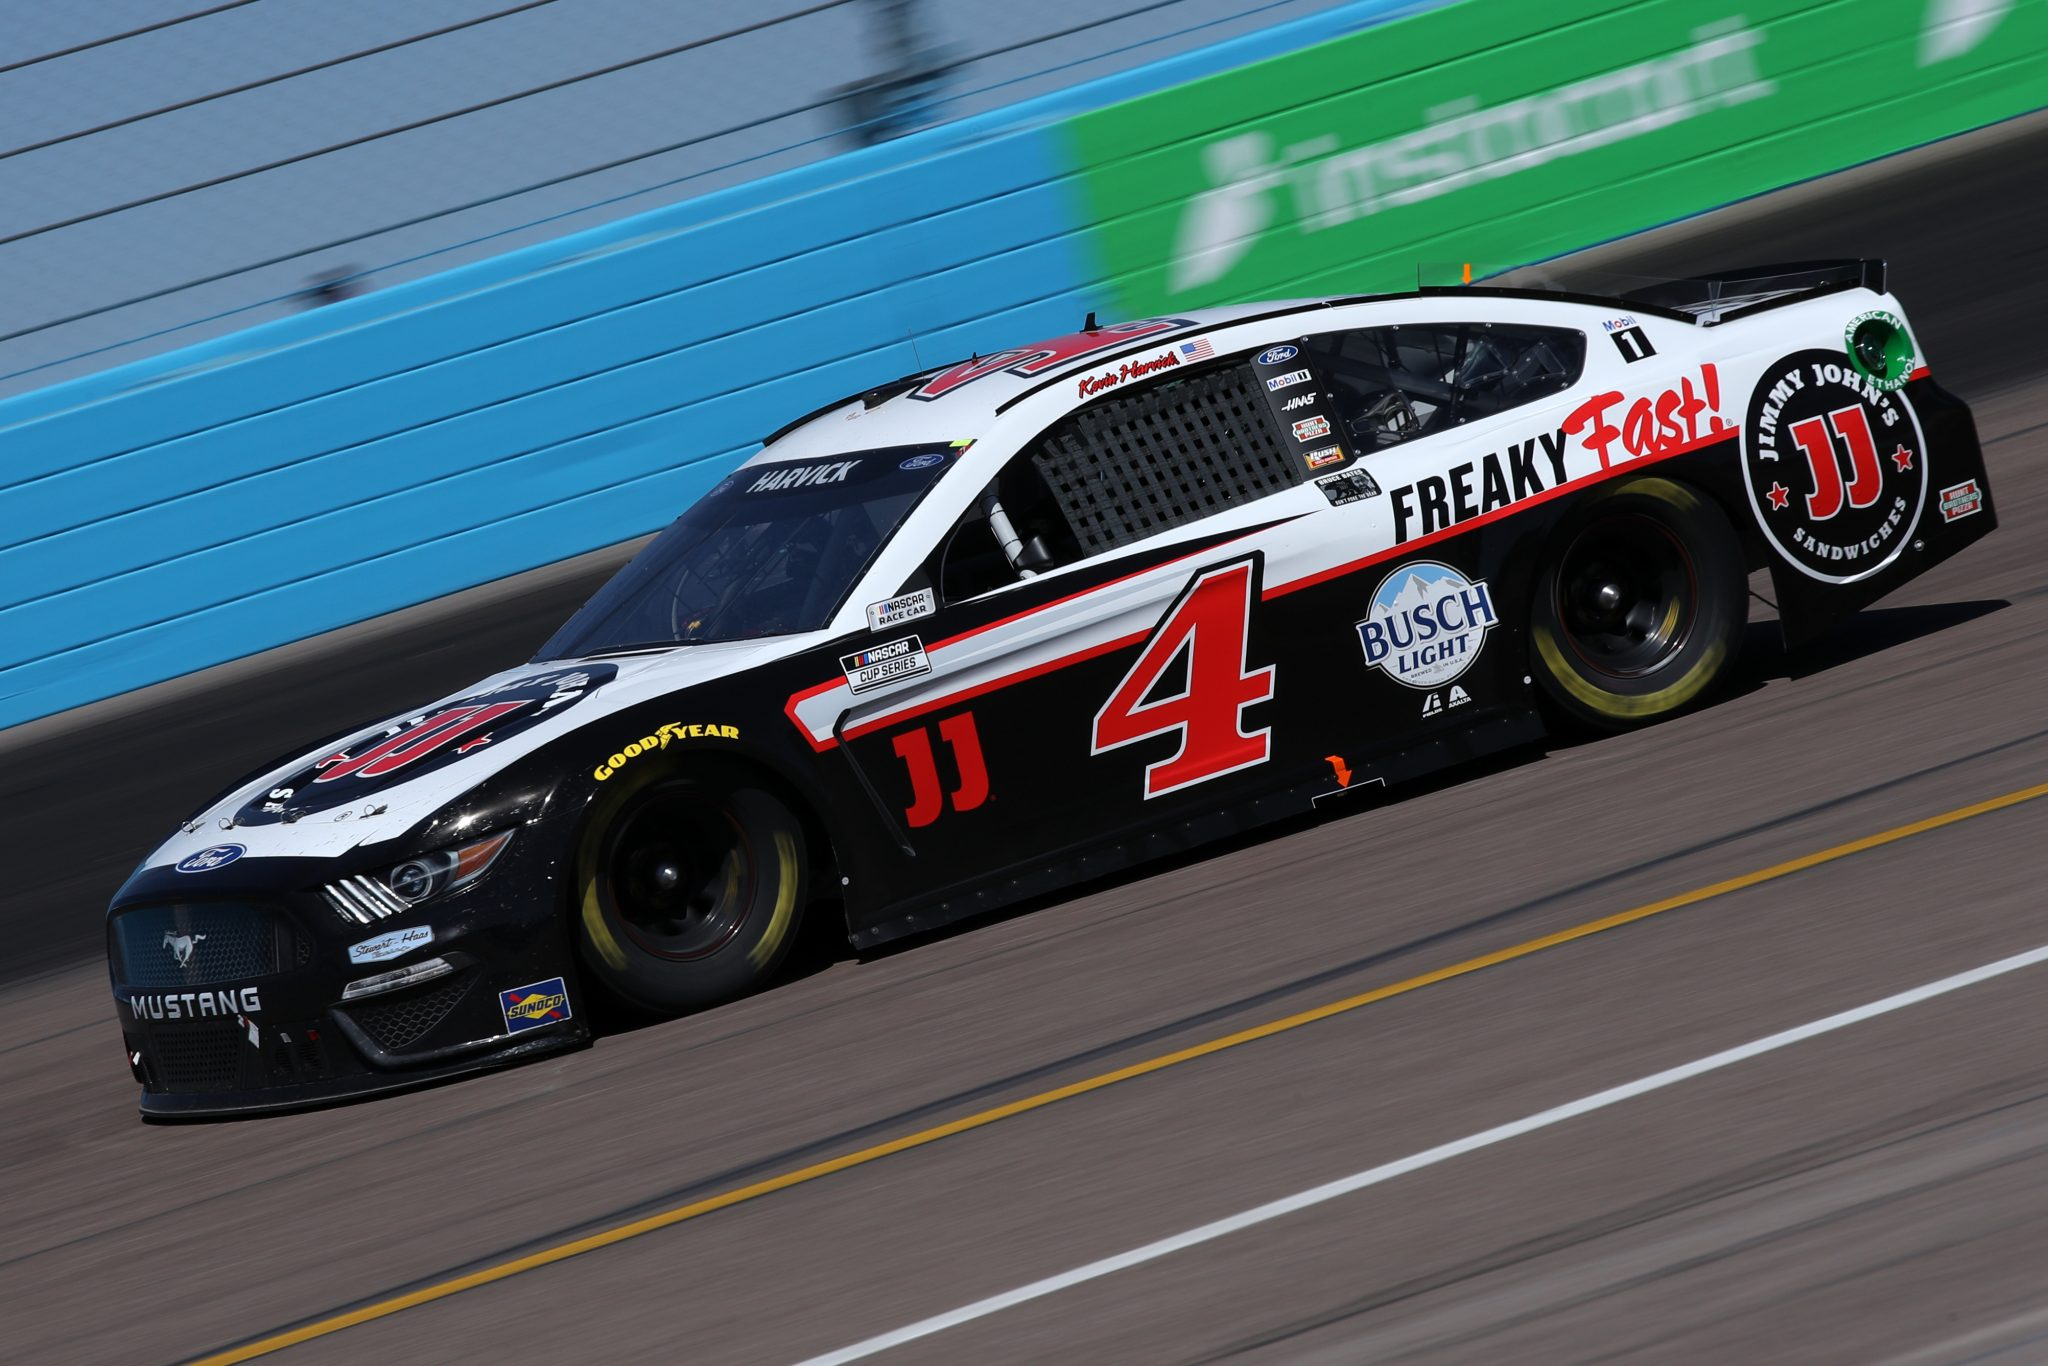 AVONDALE, ARIZONA - MARCH 14: Kevin Harvick, driver of the #4 Jimmy John's Ford, drives during the NASCAR Cup Series Instacart 500 at Phoenix Raceway on March 14, 2021 in Avondale, Arizona. (Photo by Sean Gardner/Getty Images) | Getty Images